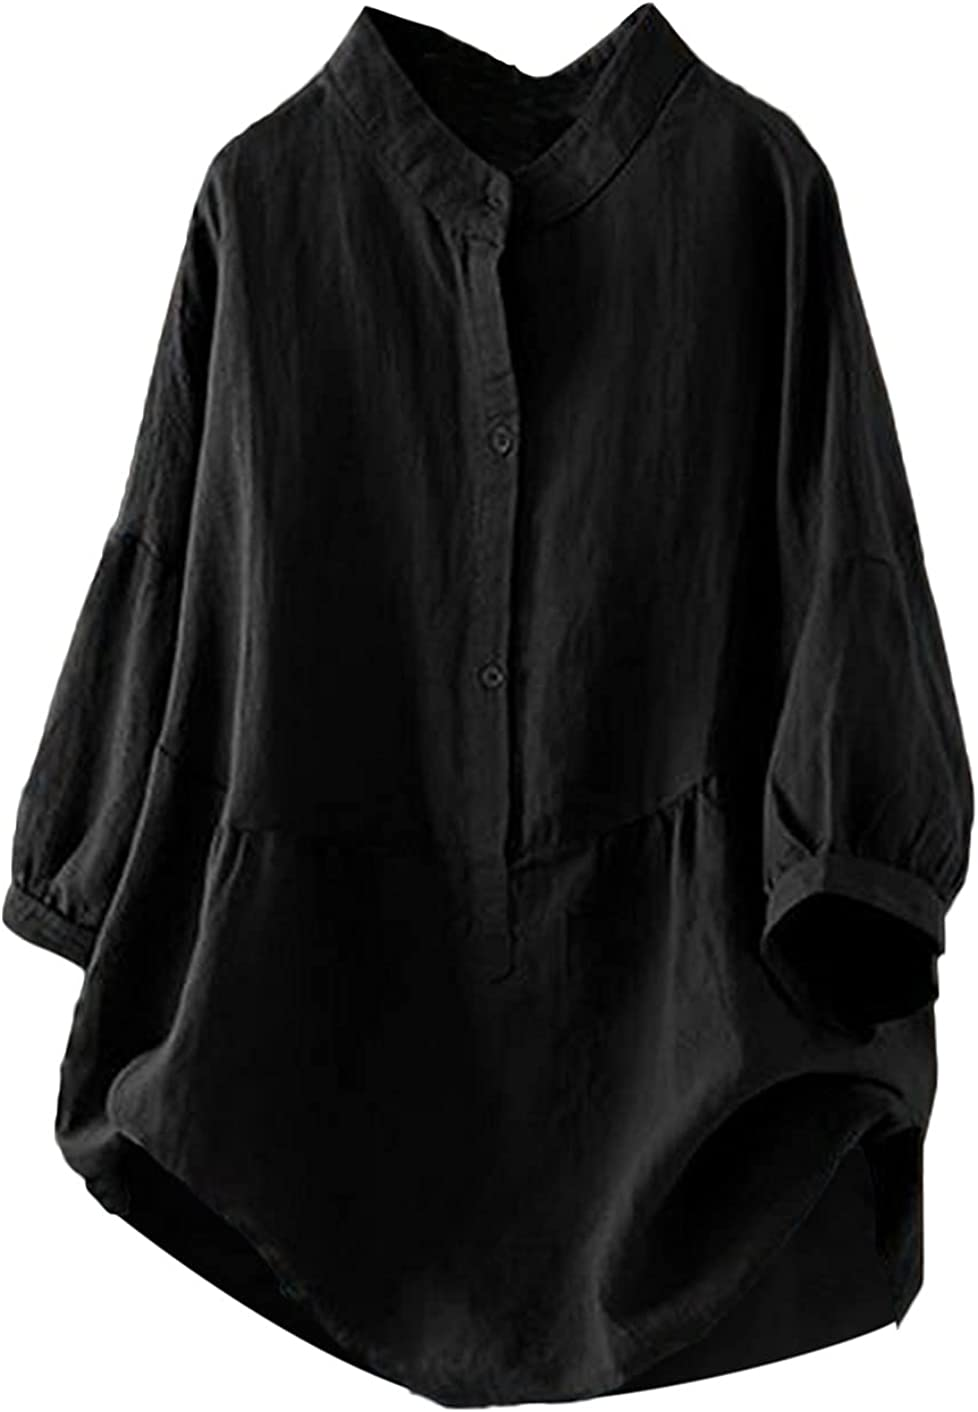 Batwing Shirts trend rank Weekly update for Women Casual Button Sol Shirt Down T Pullover